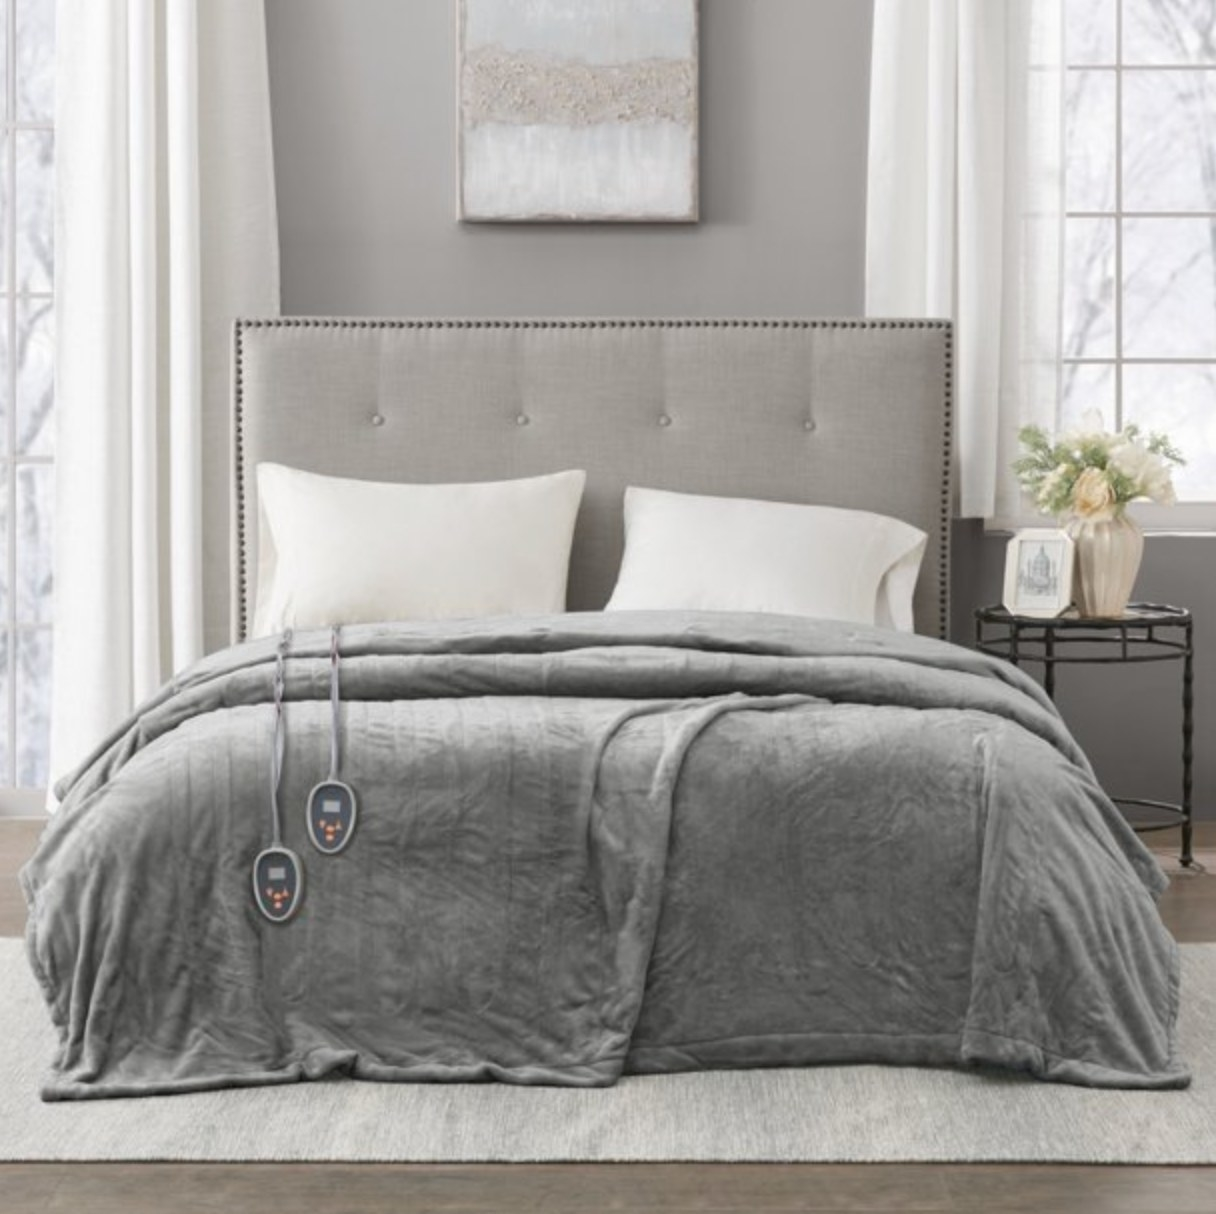 The heated plush blanket in gray